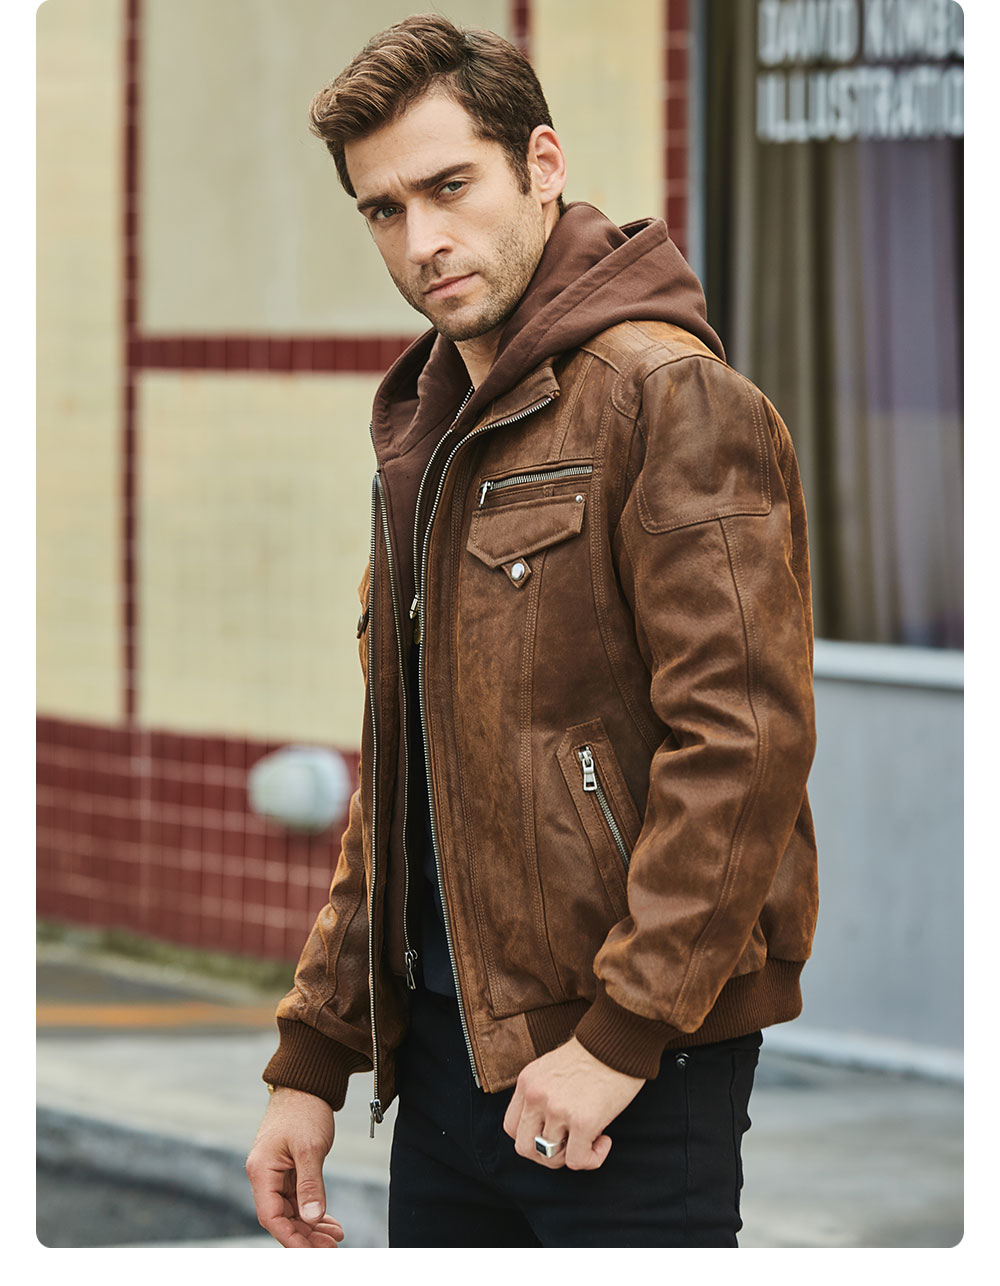 H014713c3d9de4d09984e95a724aab6c6y FLAVOR New Men's Real Leather Jacket with Removable Hood Brown Jacket Genuine Leather Warm Coat For Men